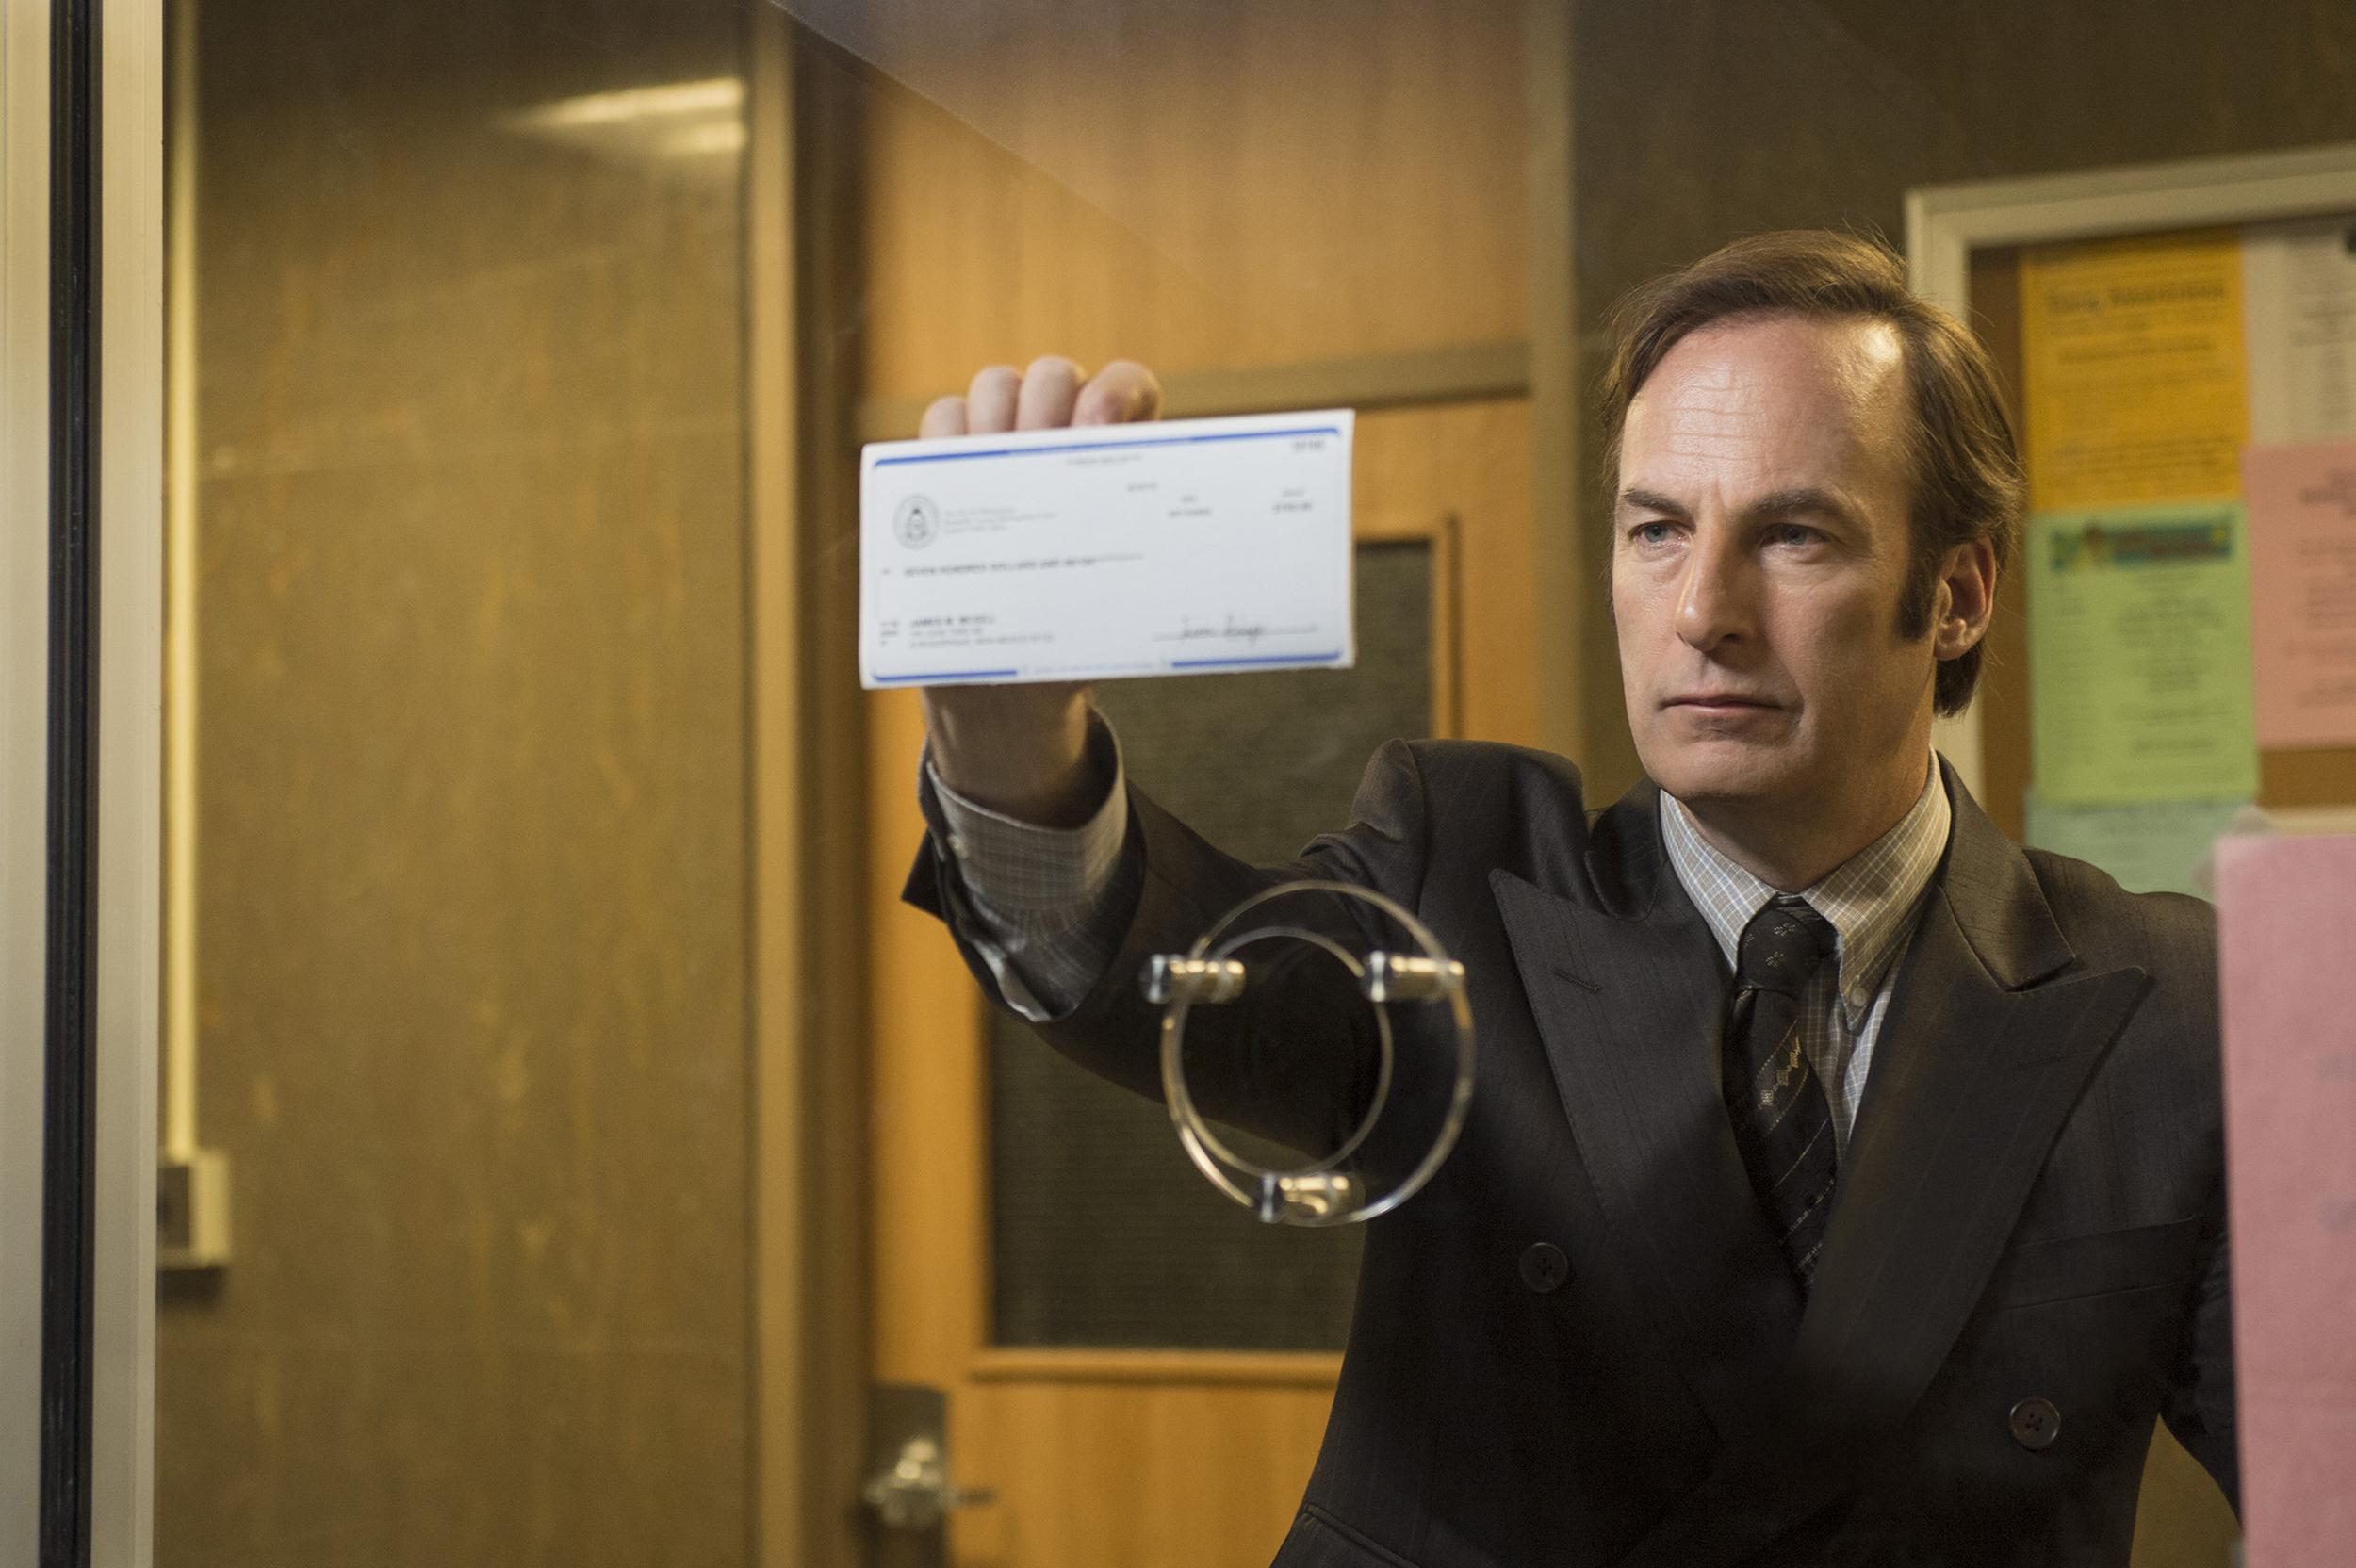 BETTER CALL SAUL Begins Six Years Before Breaking Bad - NBC.